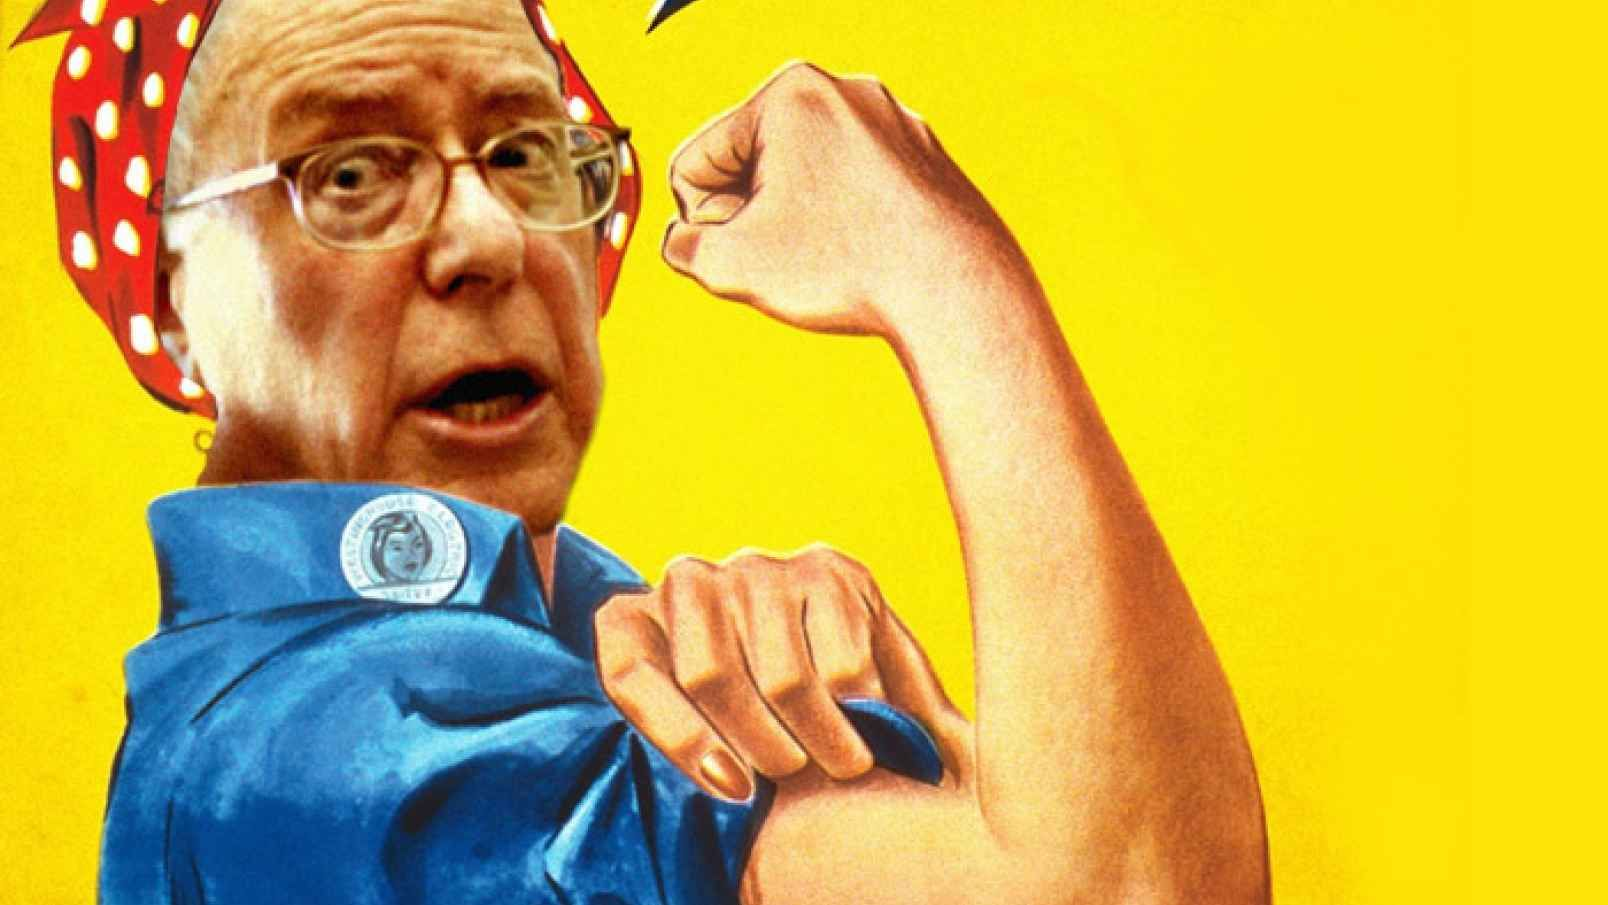 Class Warrior Bernie Sanders To Get Awards In Beverly Hills Rosie The Riveter Feminist Icons Pittsburgh Artists